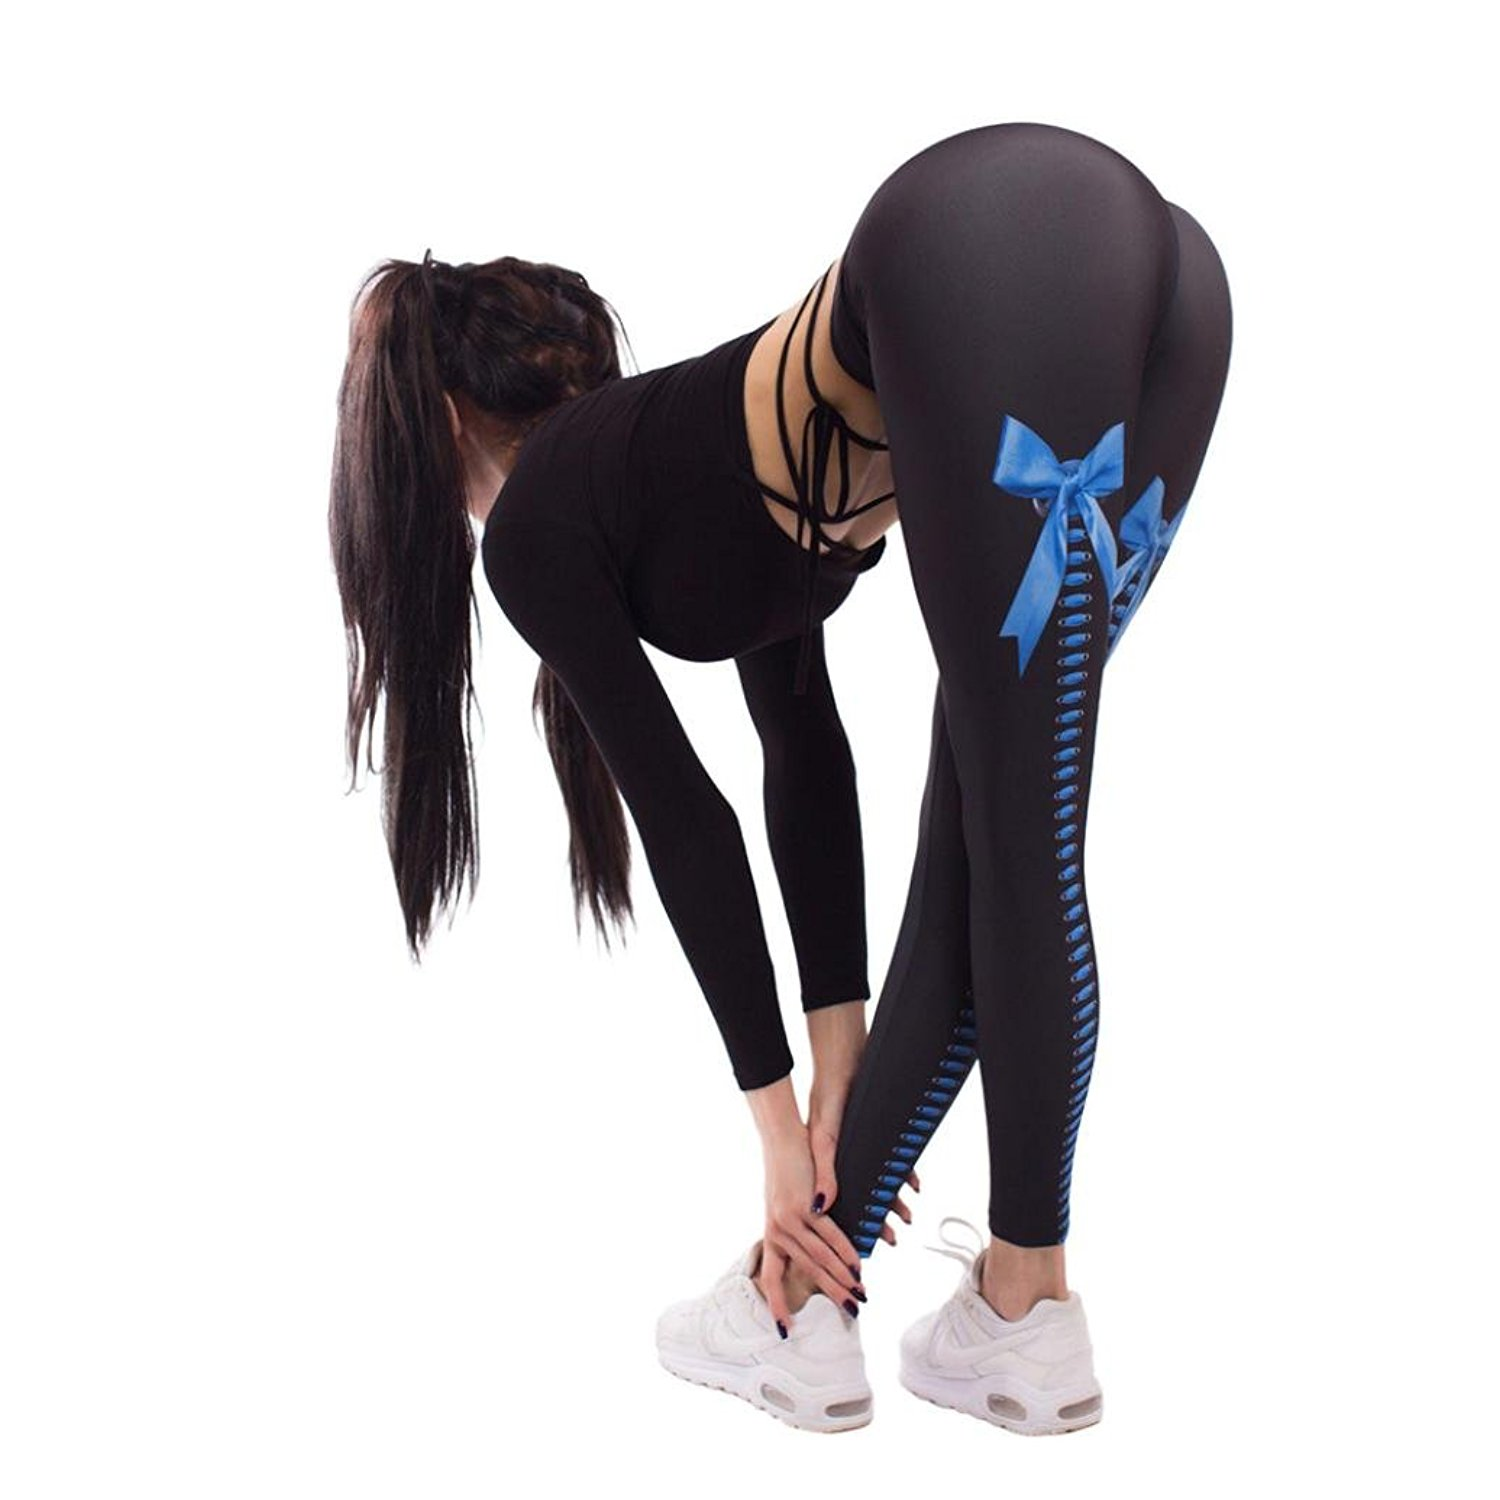 morecome Women Leggings, 3D Printed Fitness Yoga Sport Elastic Pants